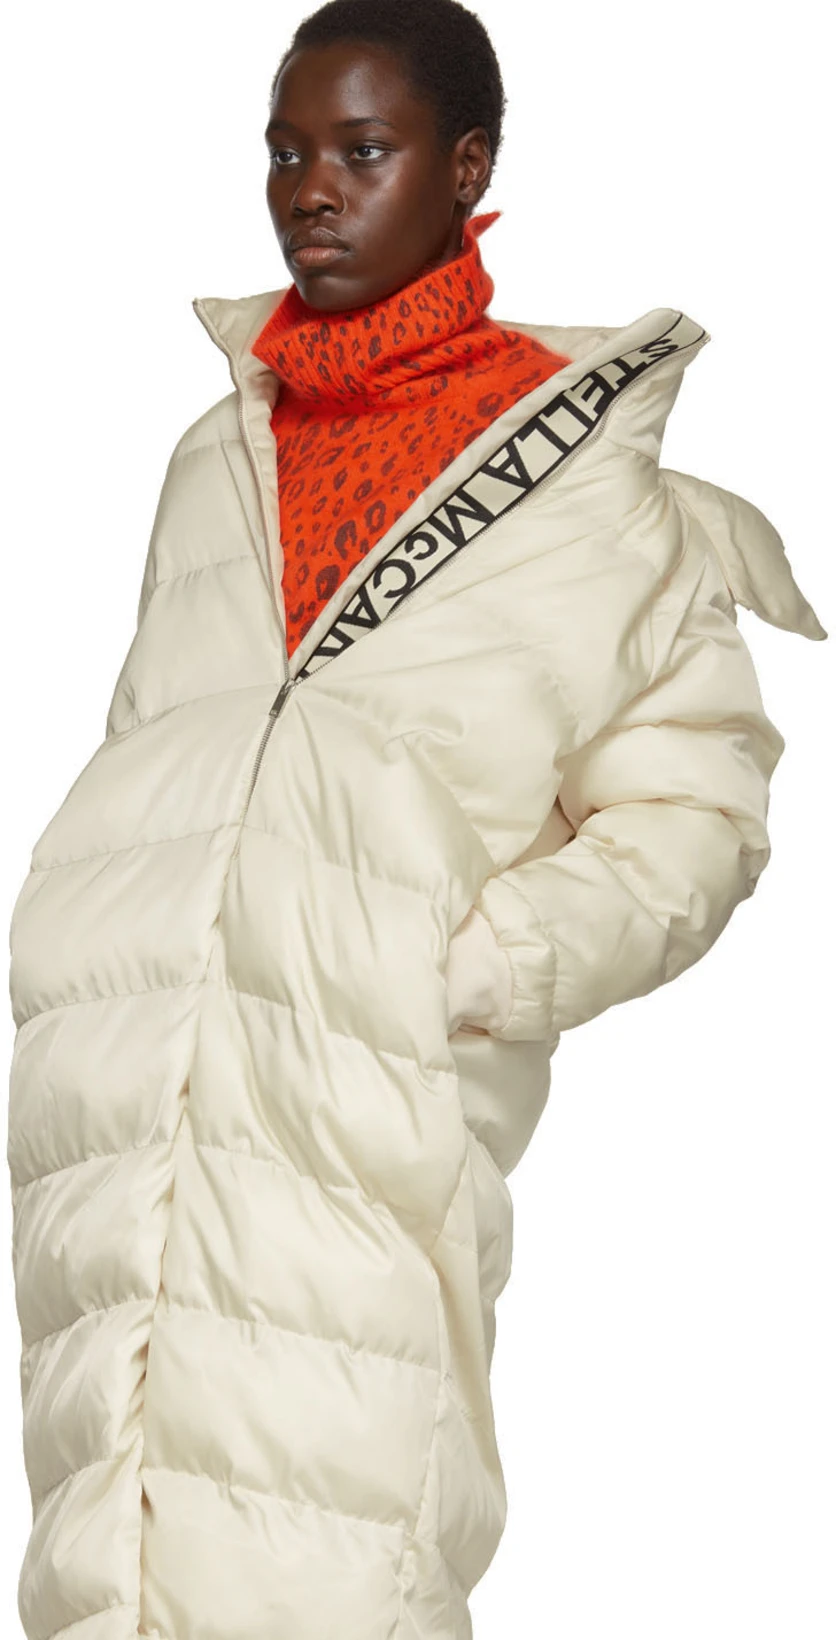 Stella Mccartney White Quilted Puffer Coat Ssense Stella Mccartney Puffer Coat Stella [ 1640 x 836 Pixel ]